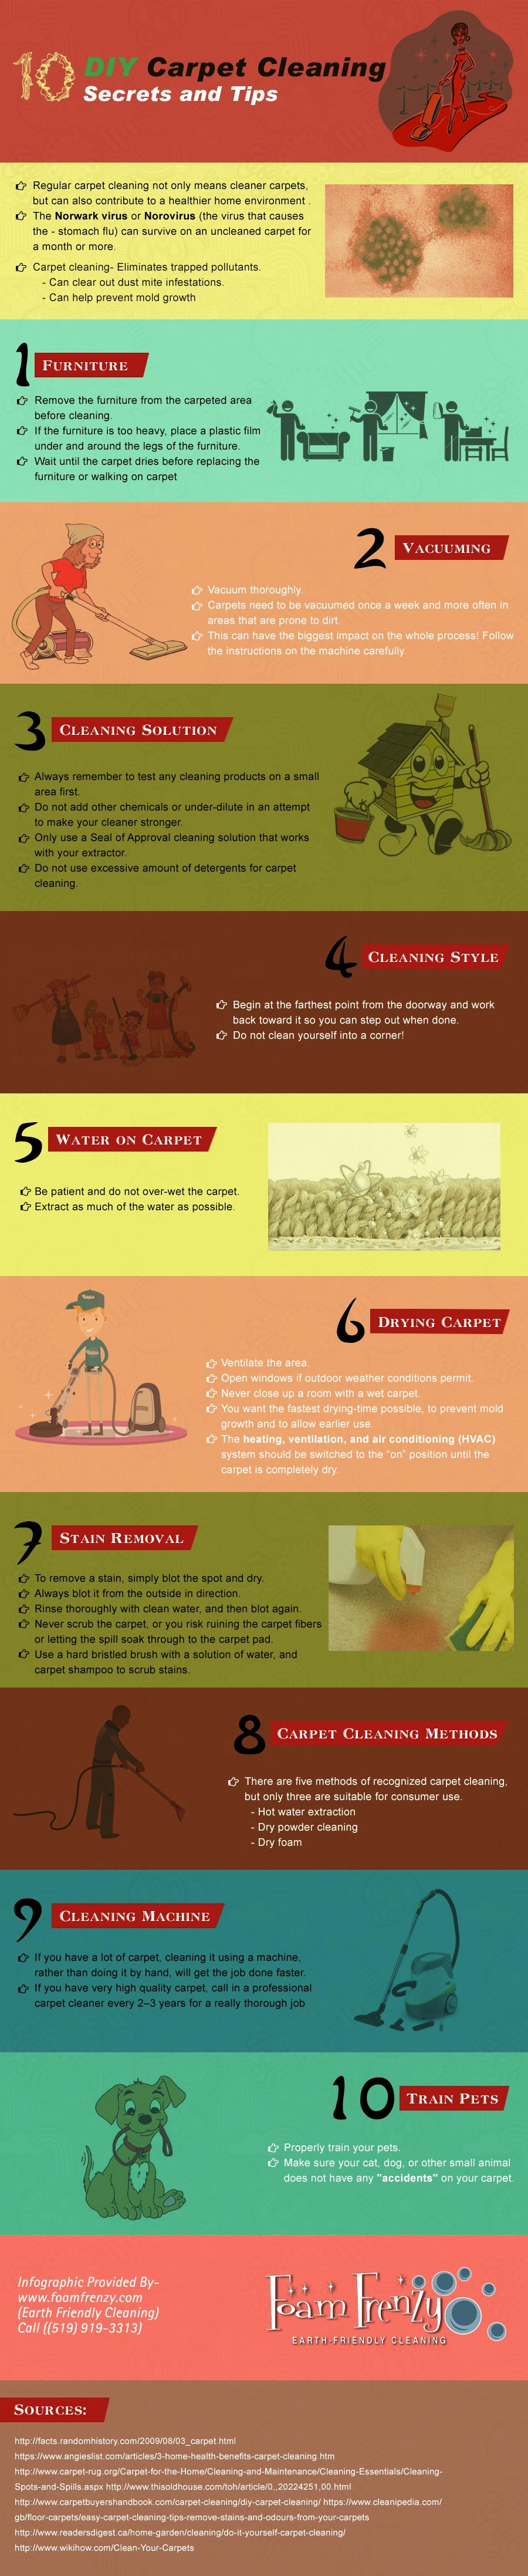 10 must known diy carpet cleaning secrets and tips infographic diy carpet cleaning infographic solutioingenieria Gallery